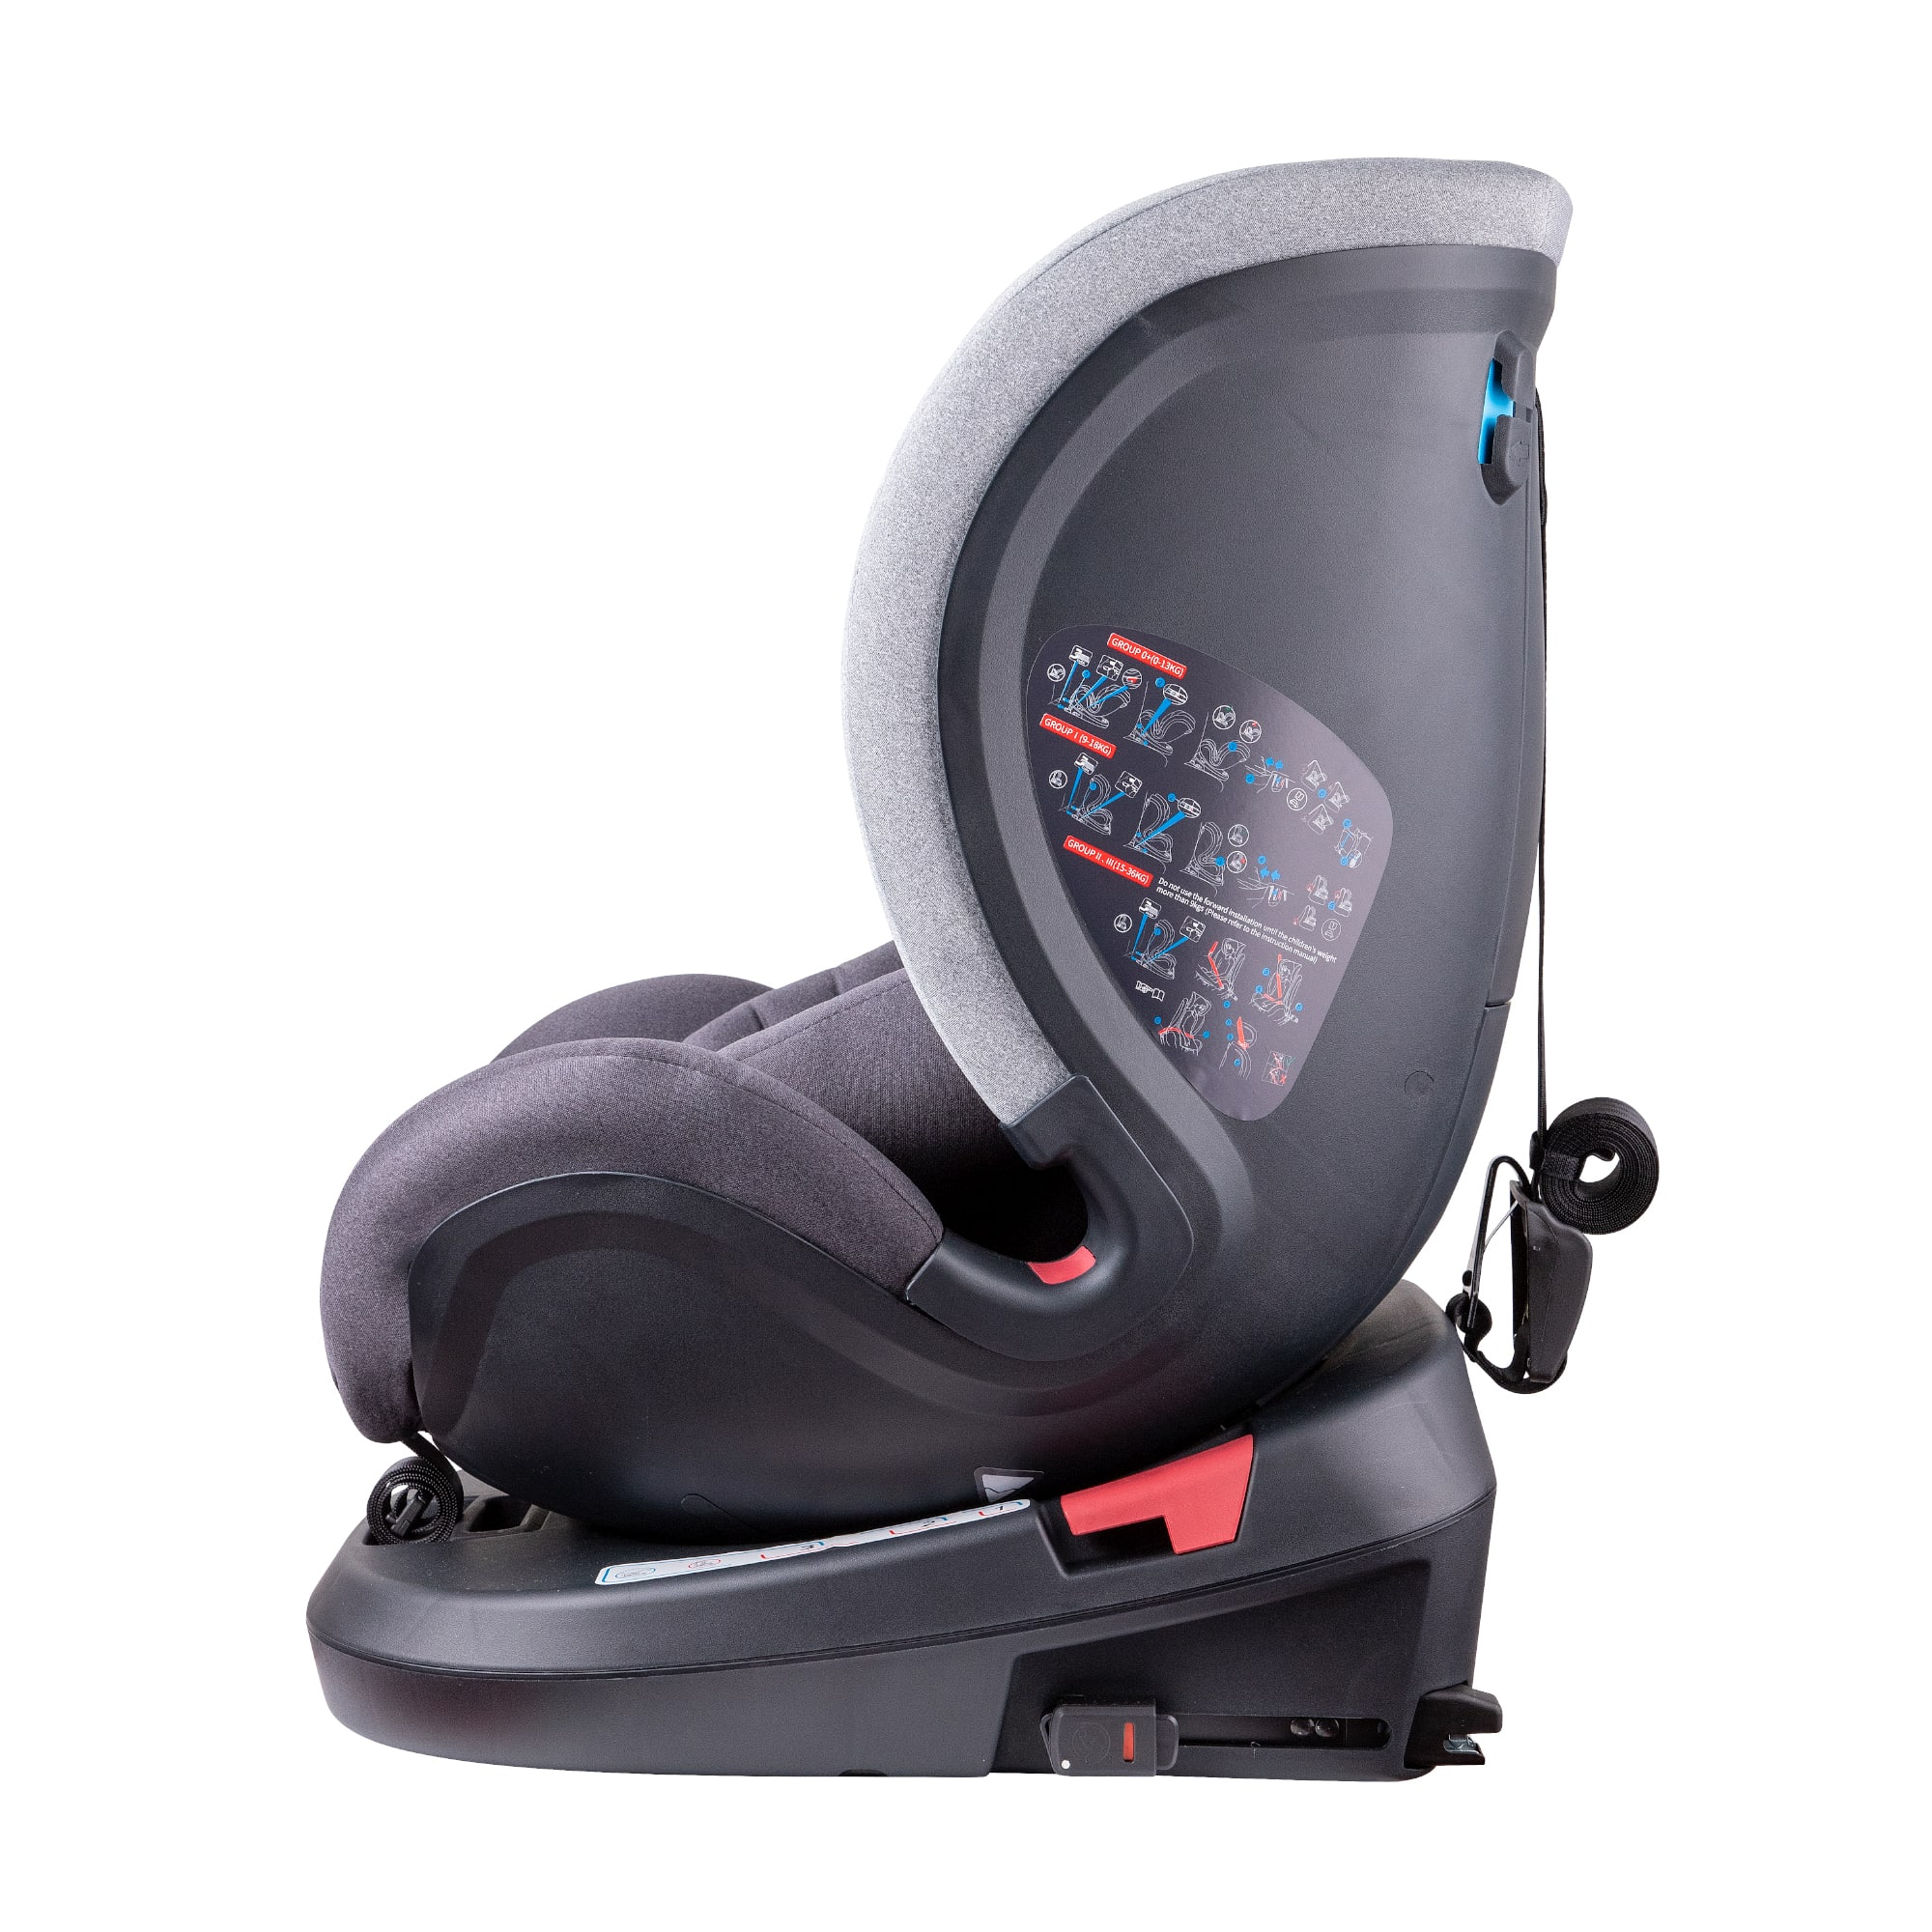 Complete with integrated ISOFIX base and tether straps